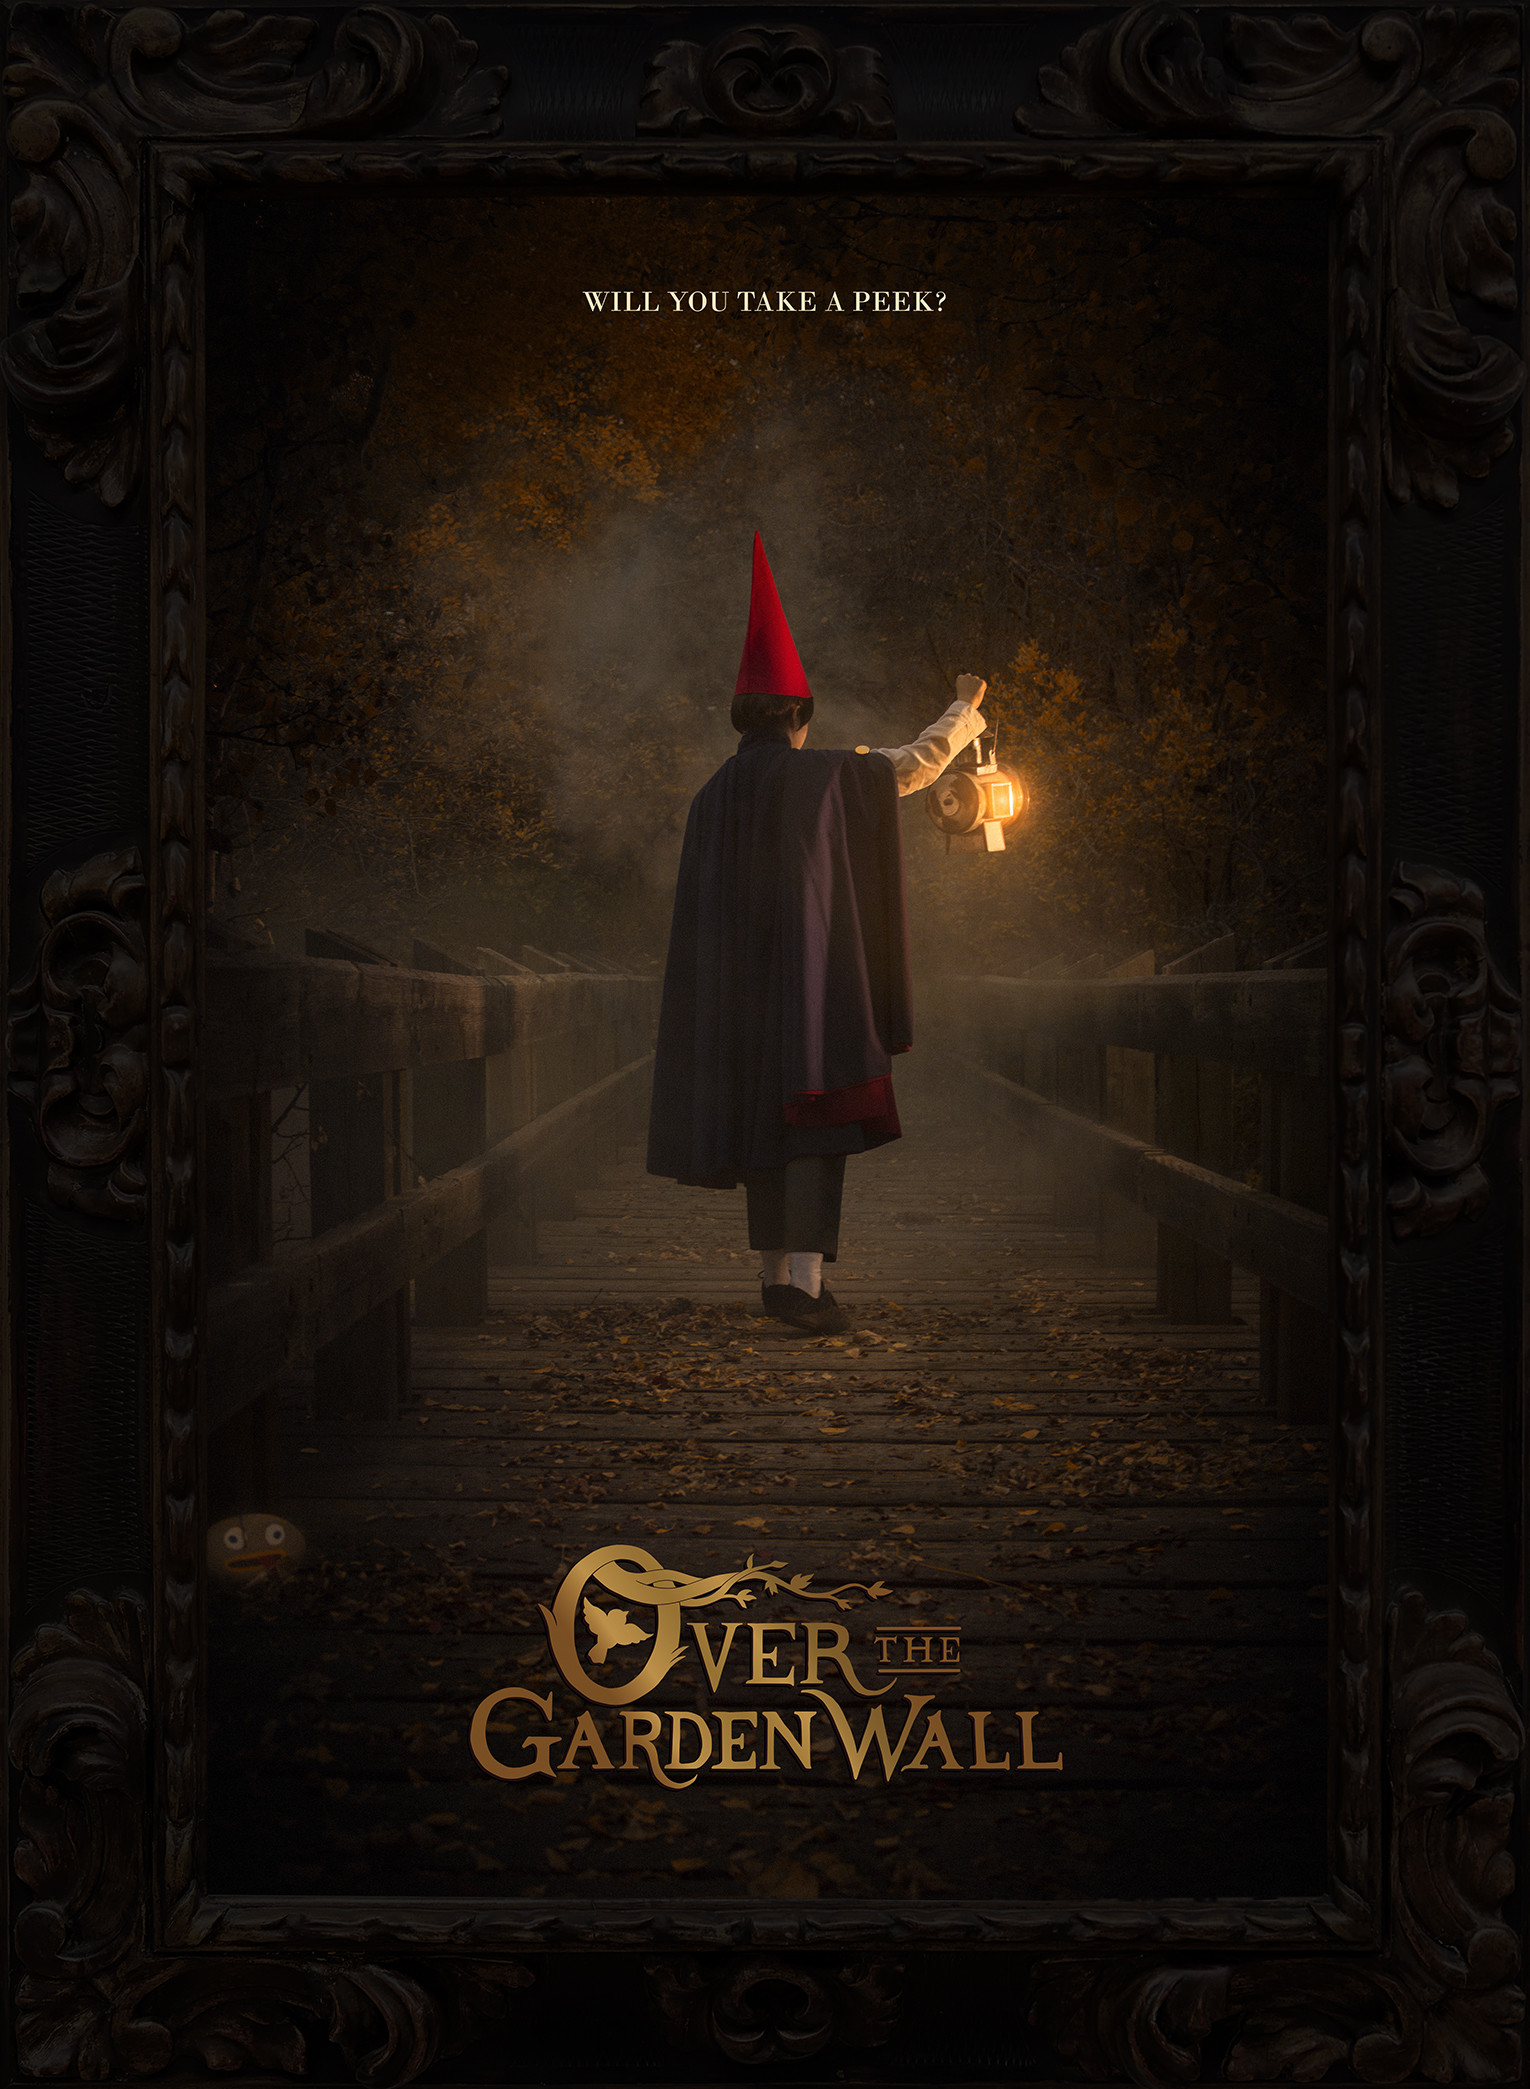 Over the Garden Wall – Wikipedia